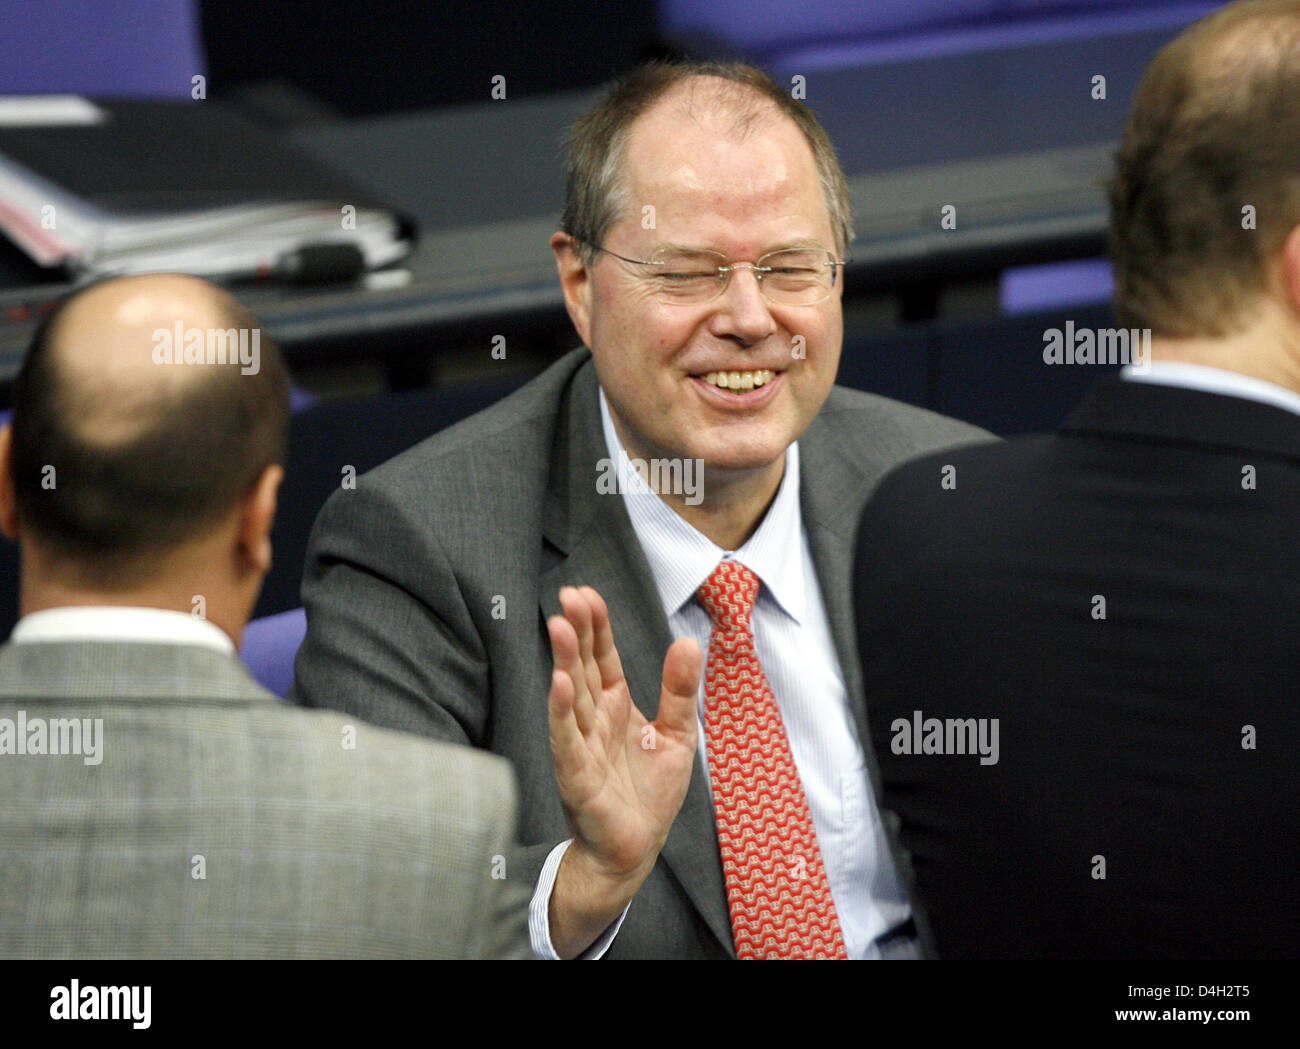 German Minister of Finance Peer Steinbrueck smiles prior to the debate on the global financial crisis at the Bundestag - Stock Image